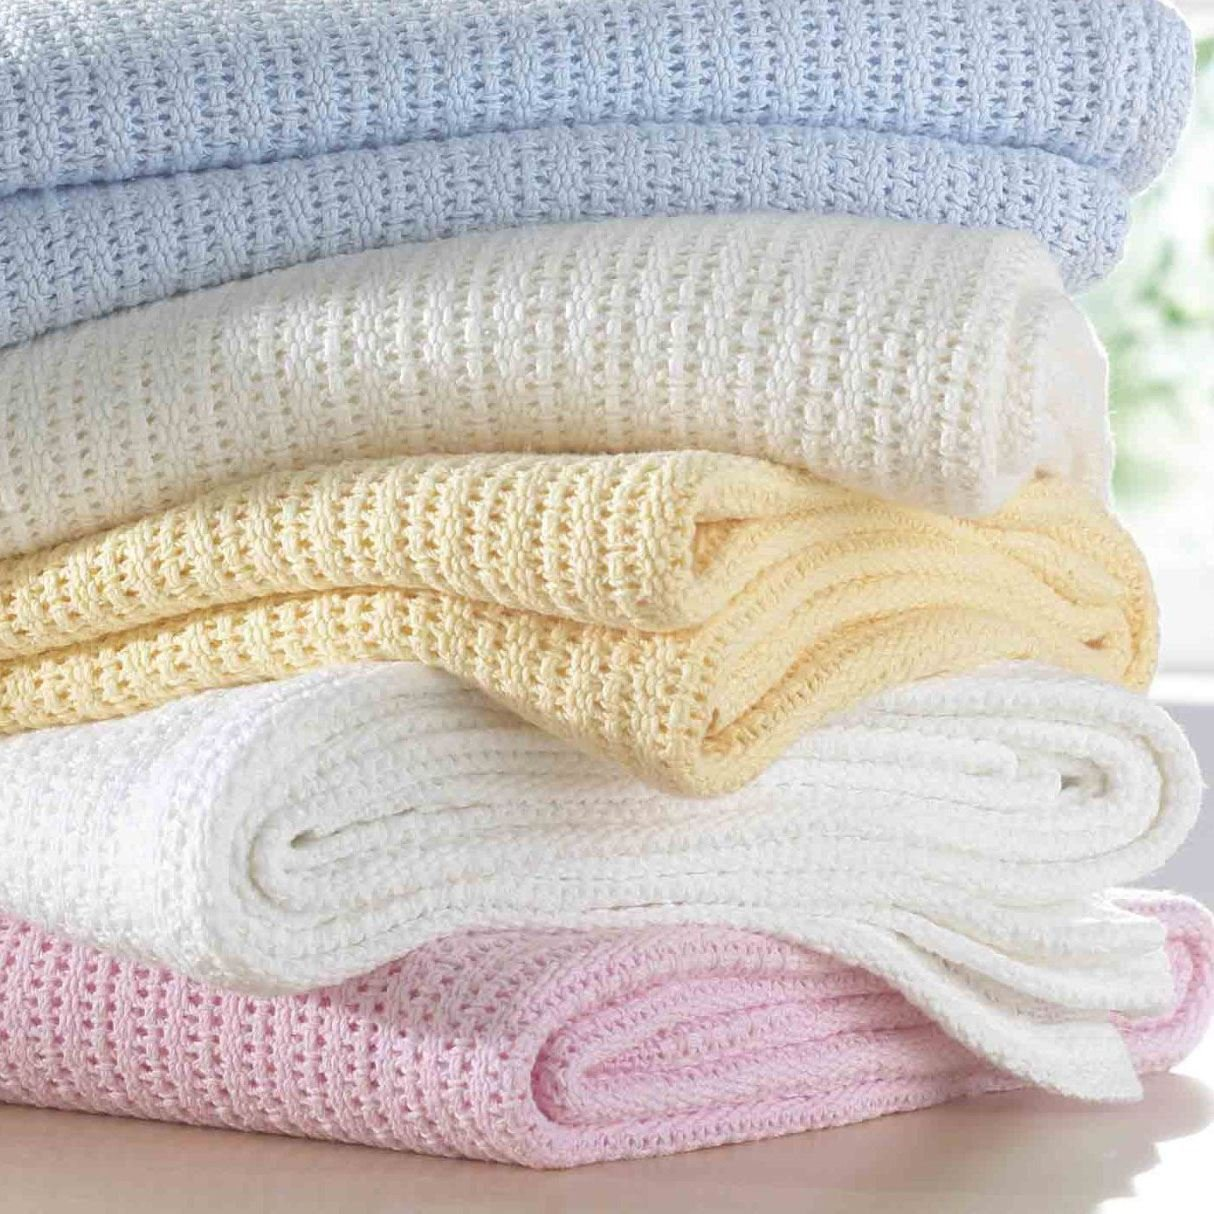 Big New Born Baby Blanket - 100% Warm Cotton Cellular - for Girls and Boys - Ideal For Travel Cot Bed, Pram, Stroller, Moses Basket, Crib - 70x90cm - Pink 2pack ASAB